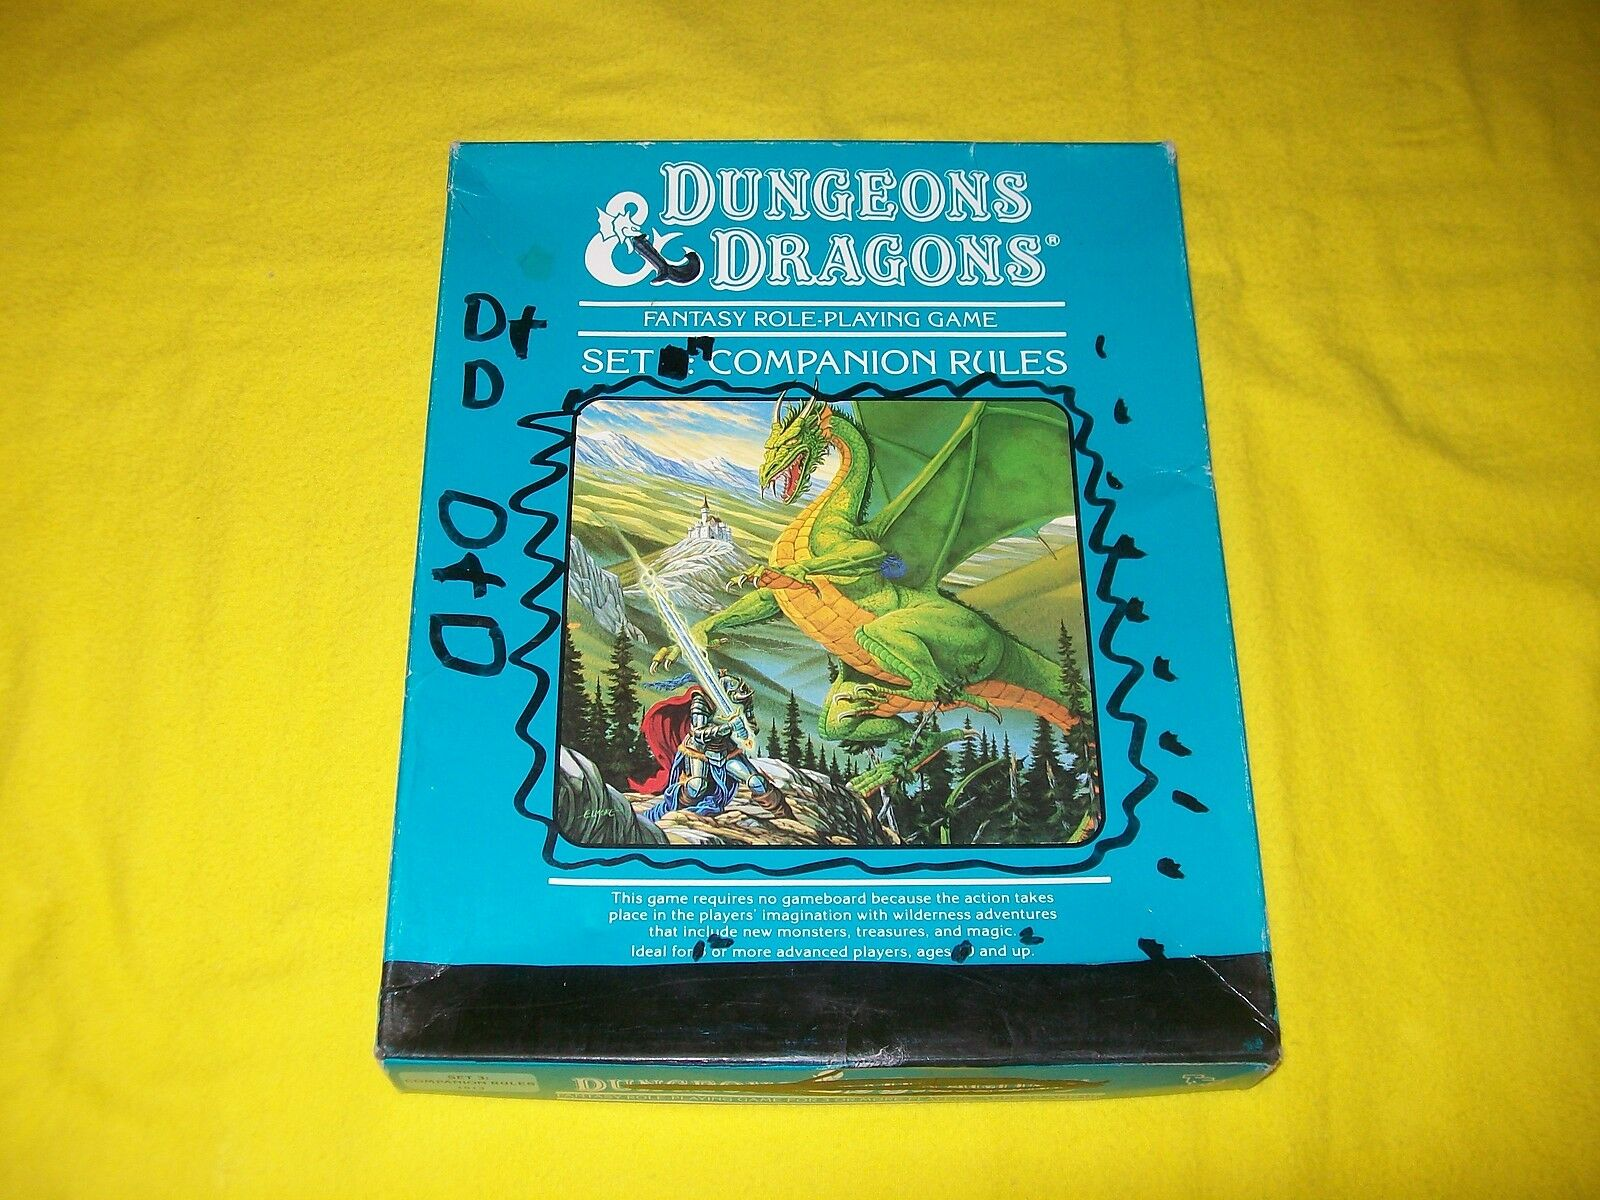 Dungeons & Dragons Set 3 compañero reglas Box Set TSR 1013 - 1